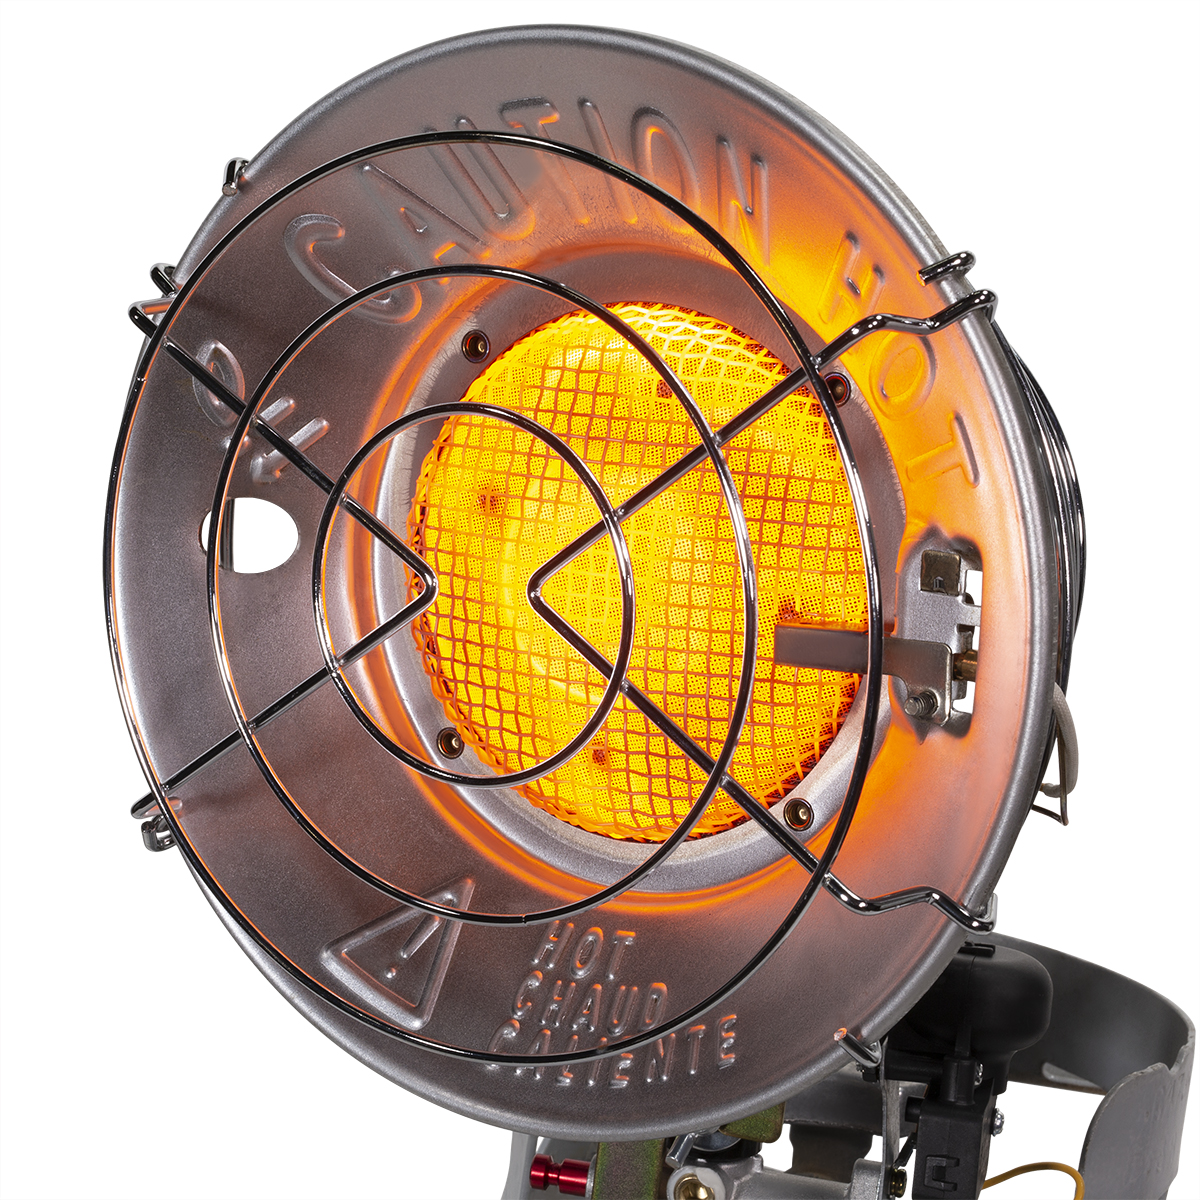 XtremepowerUS Deluxe 15,000 BTU Propane Tank Top Heater Portable Infrared Heater with Safety Shut-Off Valve /& Tip-Over Switch CSA for Outdoor